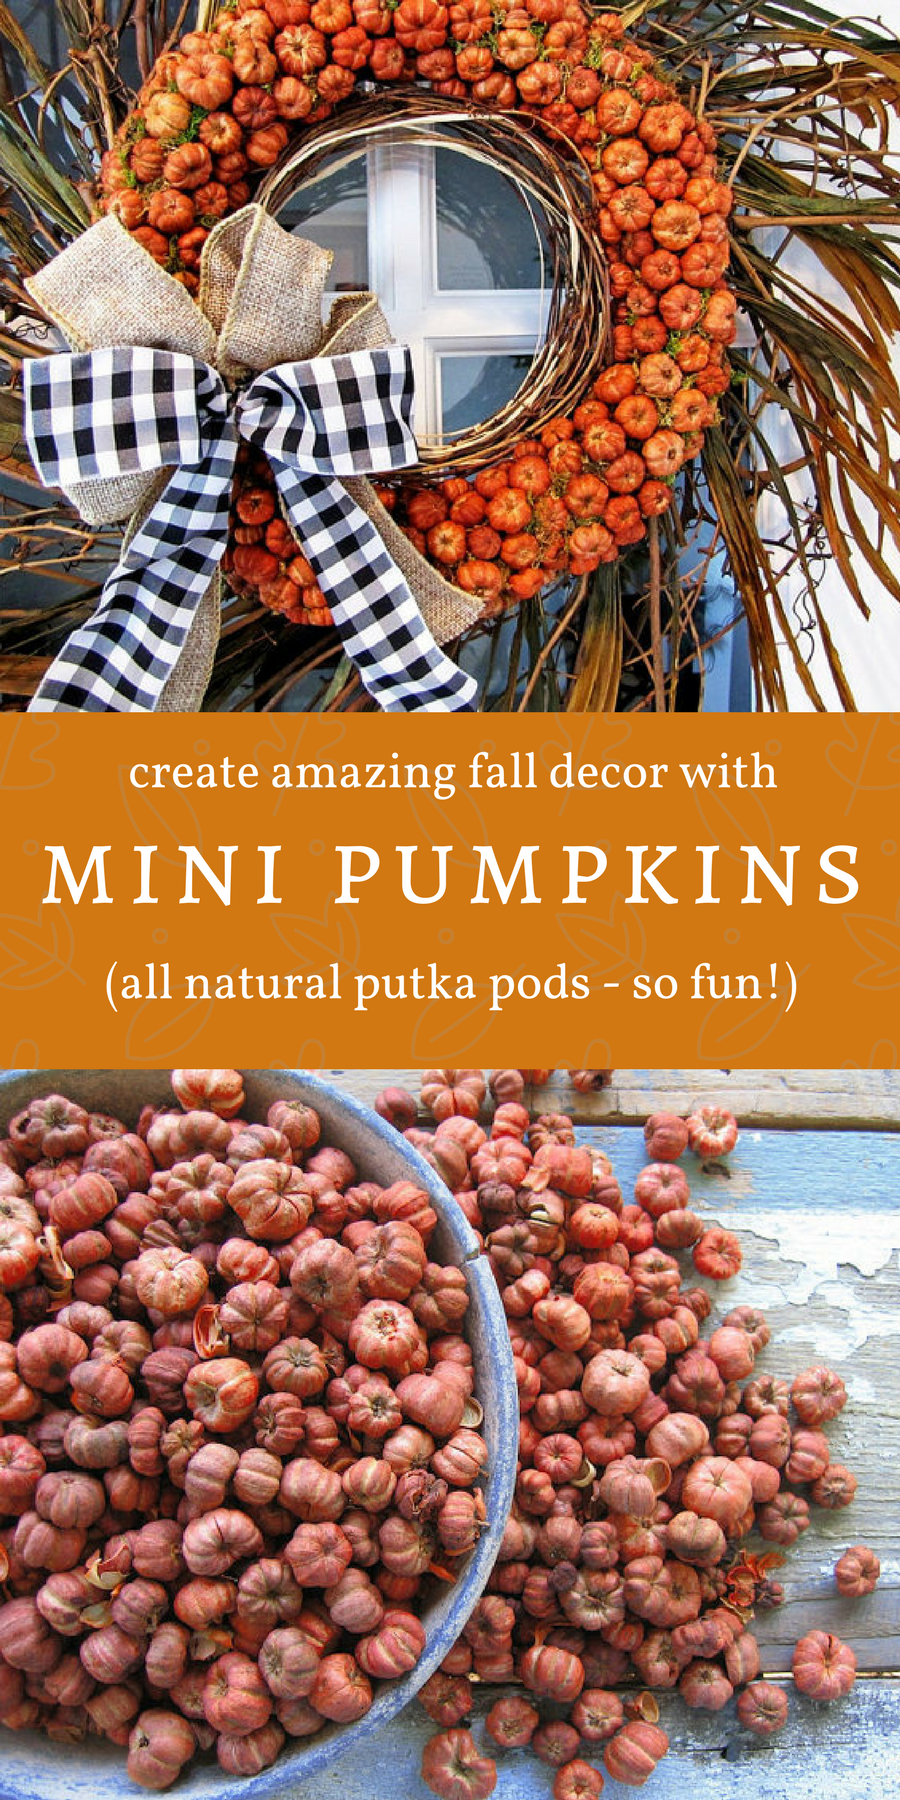 Fun Miniature Pumpkins They Re Actually Putka Pods A Natural Little Seed Pod And They Look Just Like Fall Decor Diy Outdoor Crafts Diy Fun Arts And Crafts